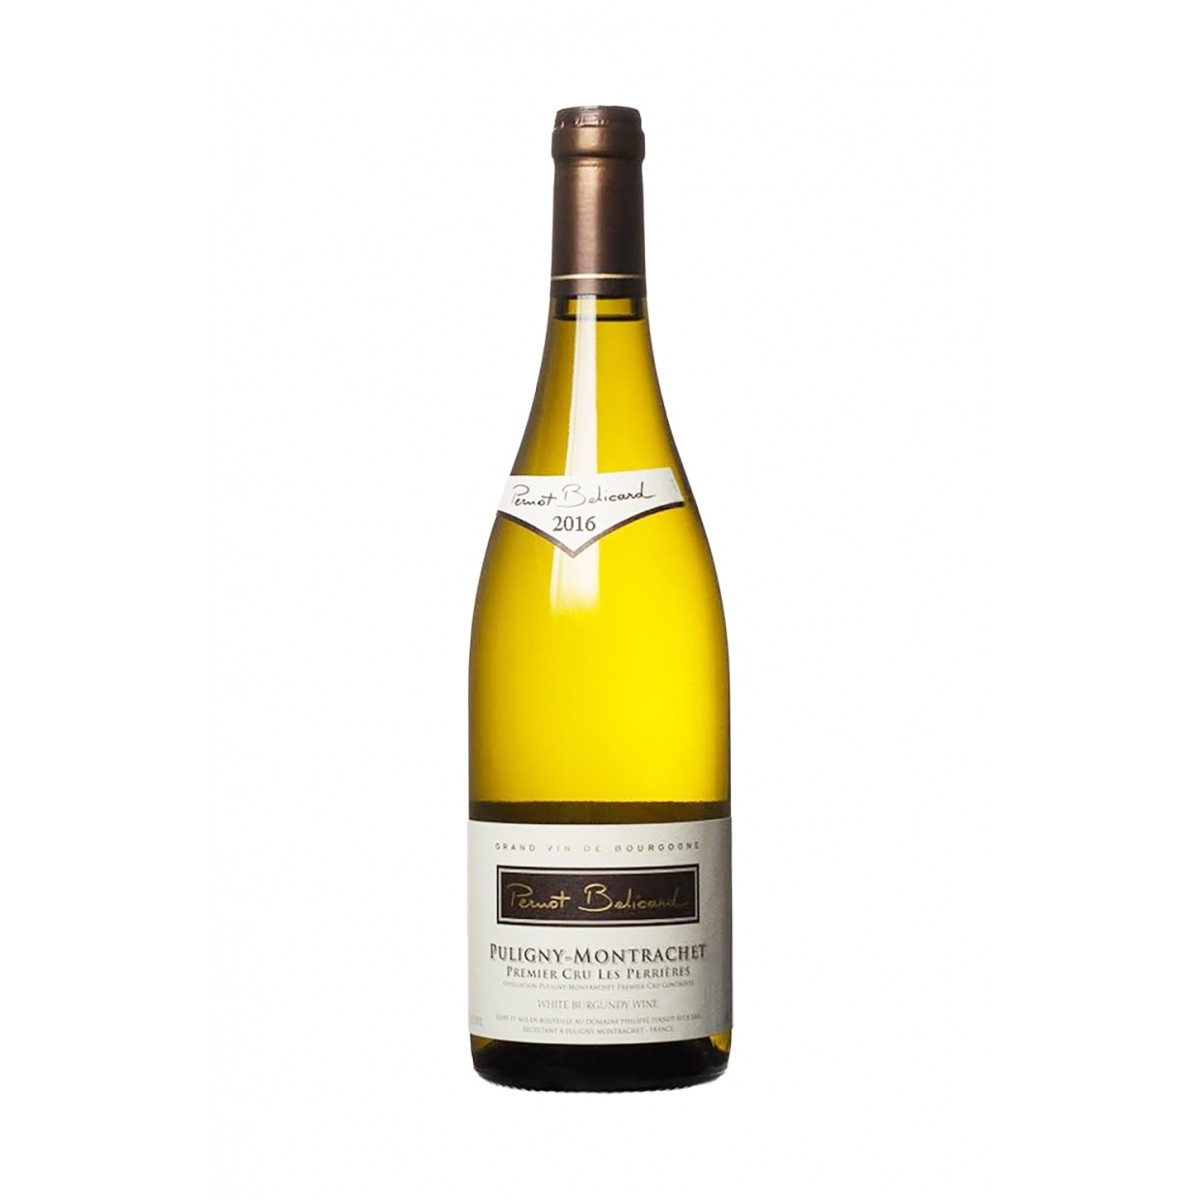 Puligny Montrachet 1er Cru Les Perrieres 2016 - Domaine Pernot Belicard